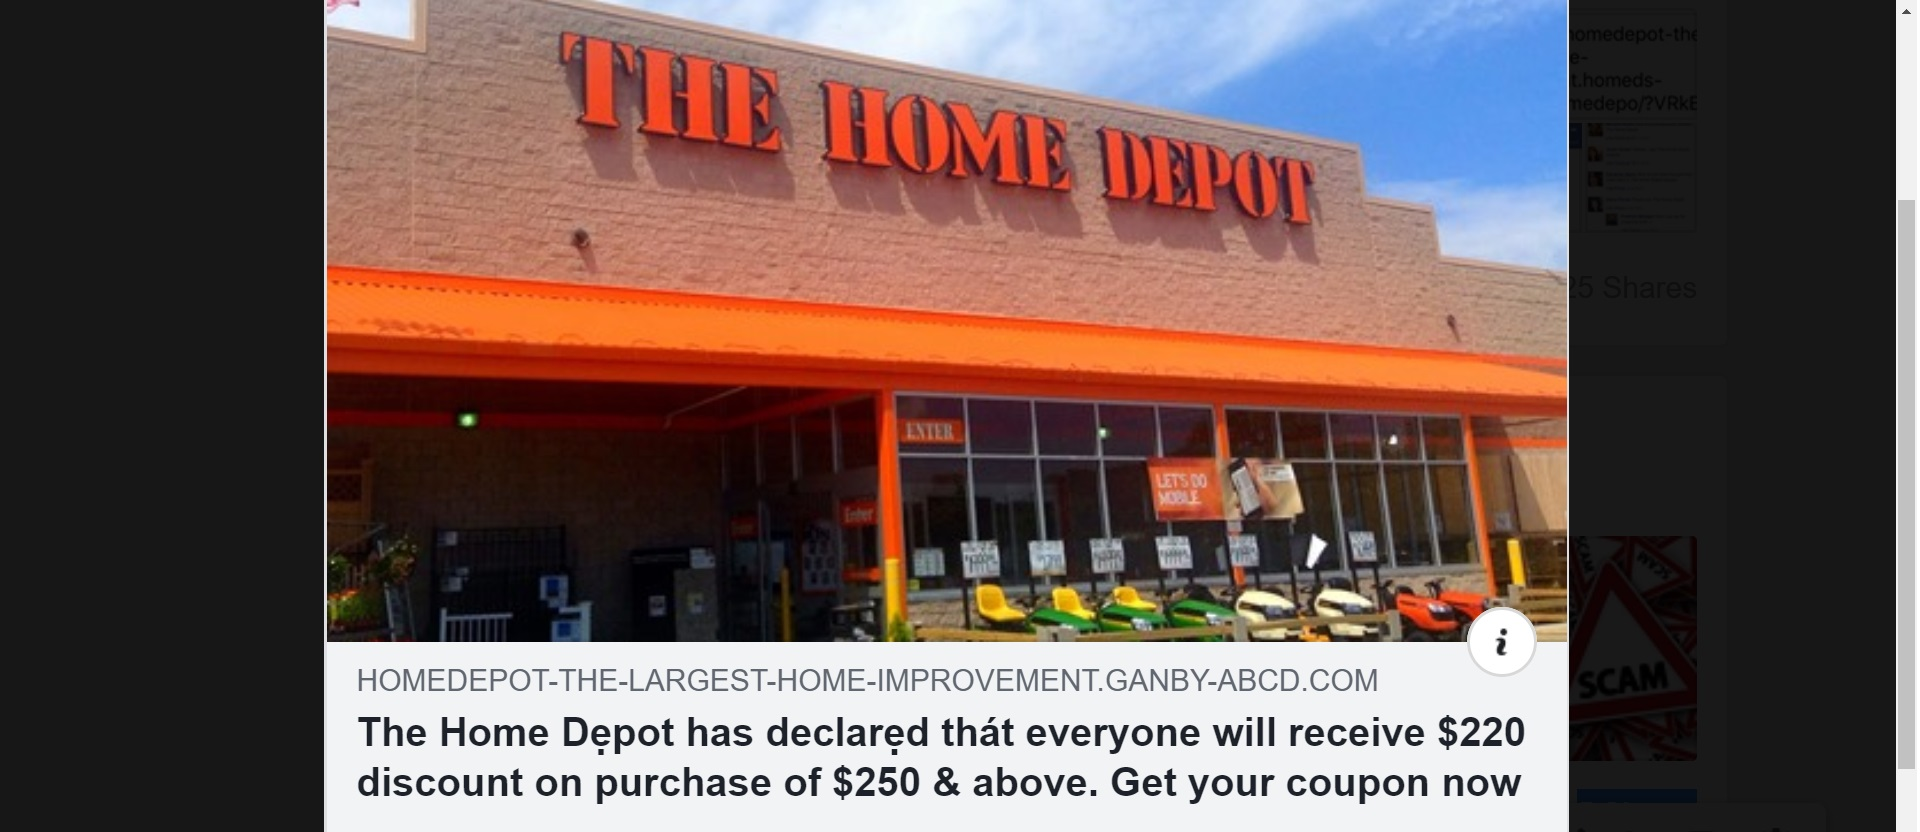 Home Depot Coupon Scam  $220 Discount on Purchase of $250